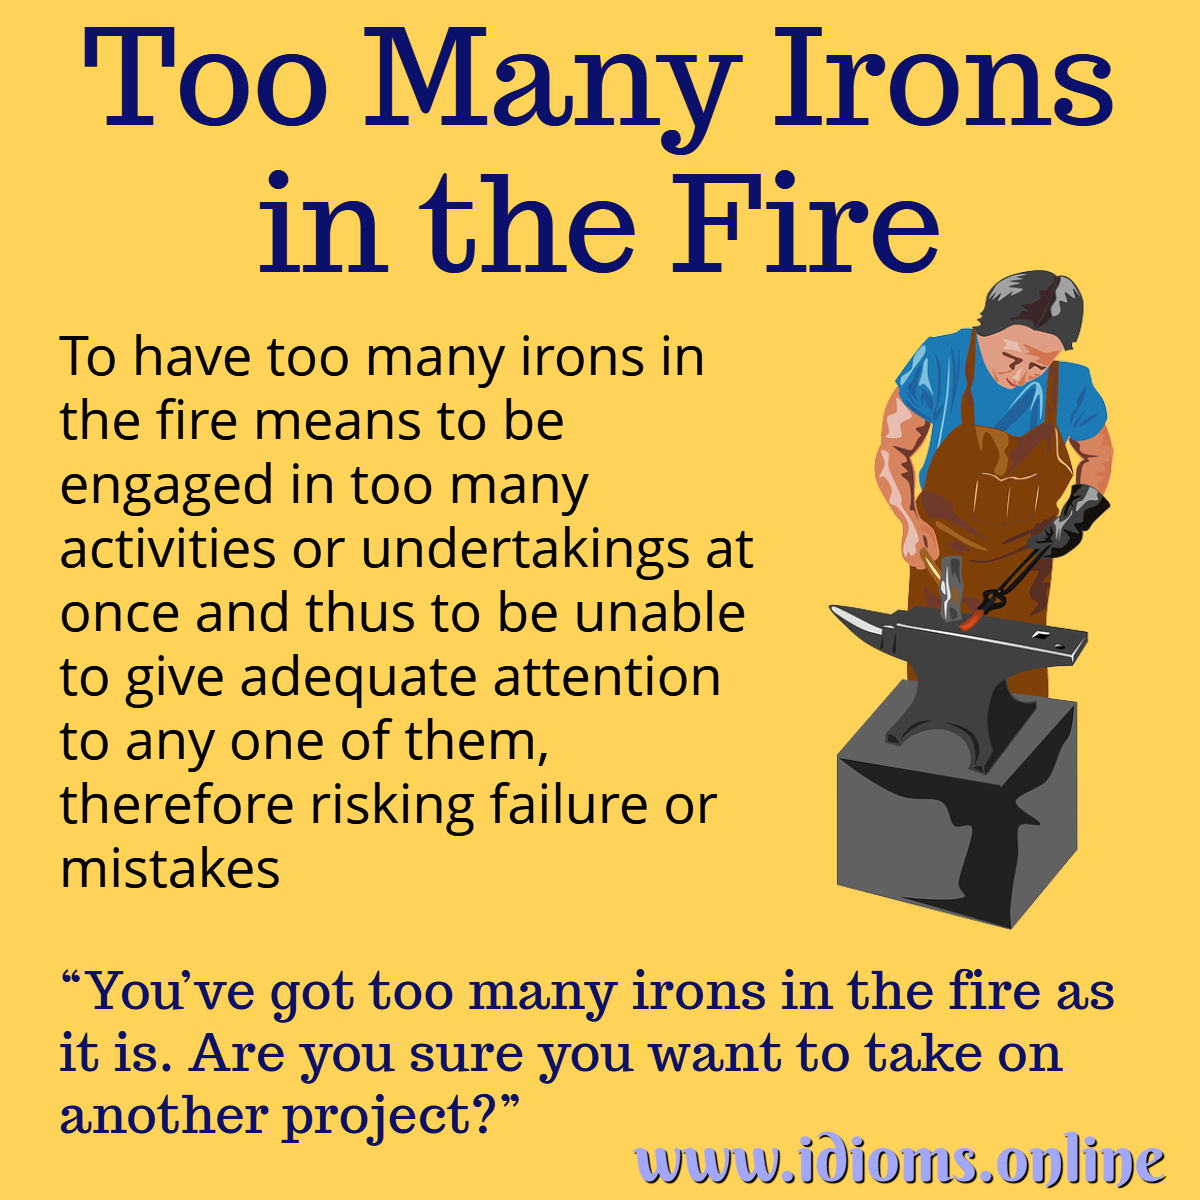 too many irons in the fire idiom meaning